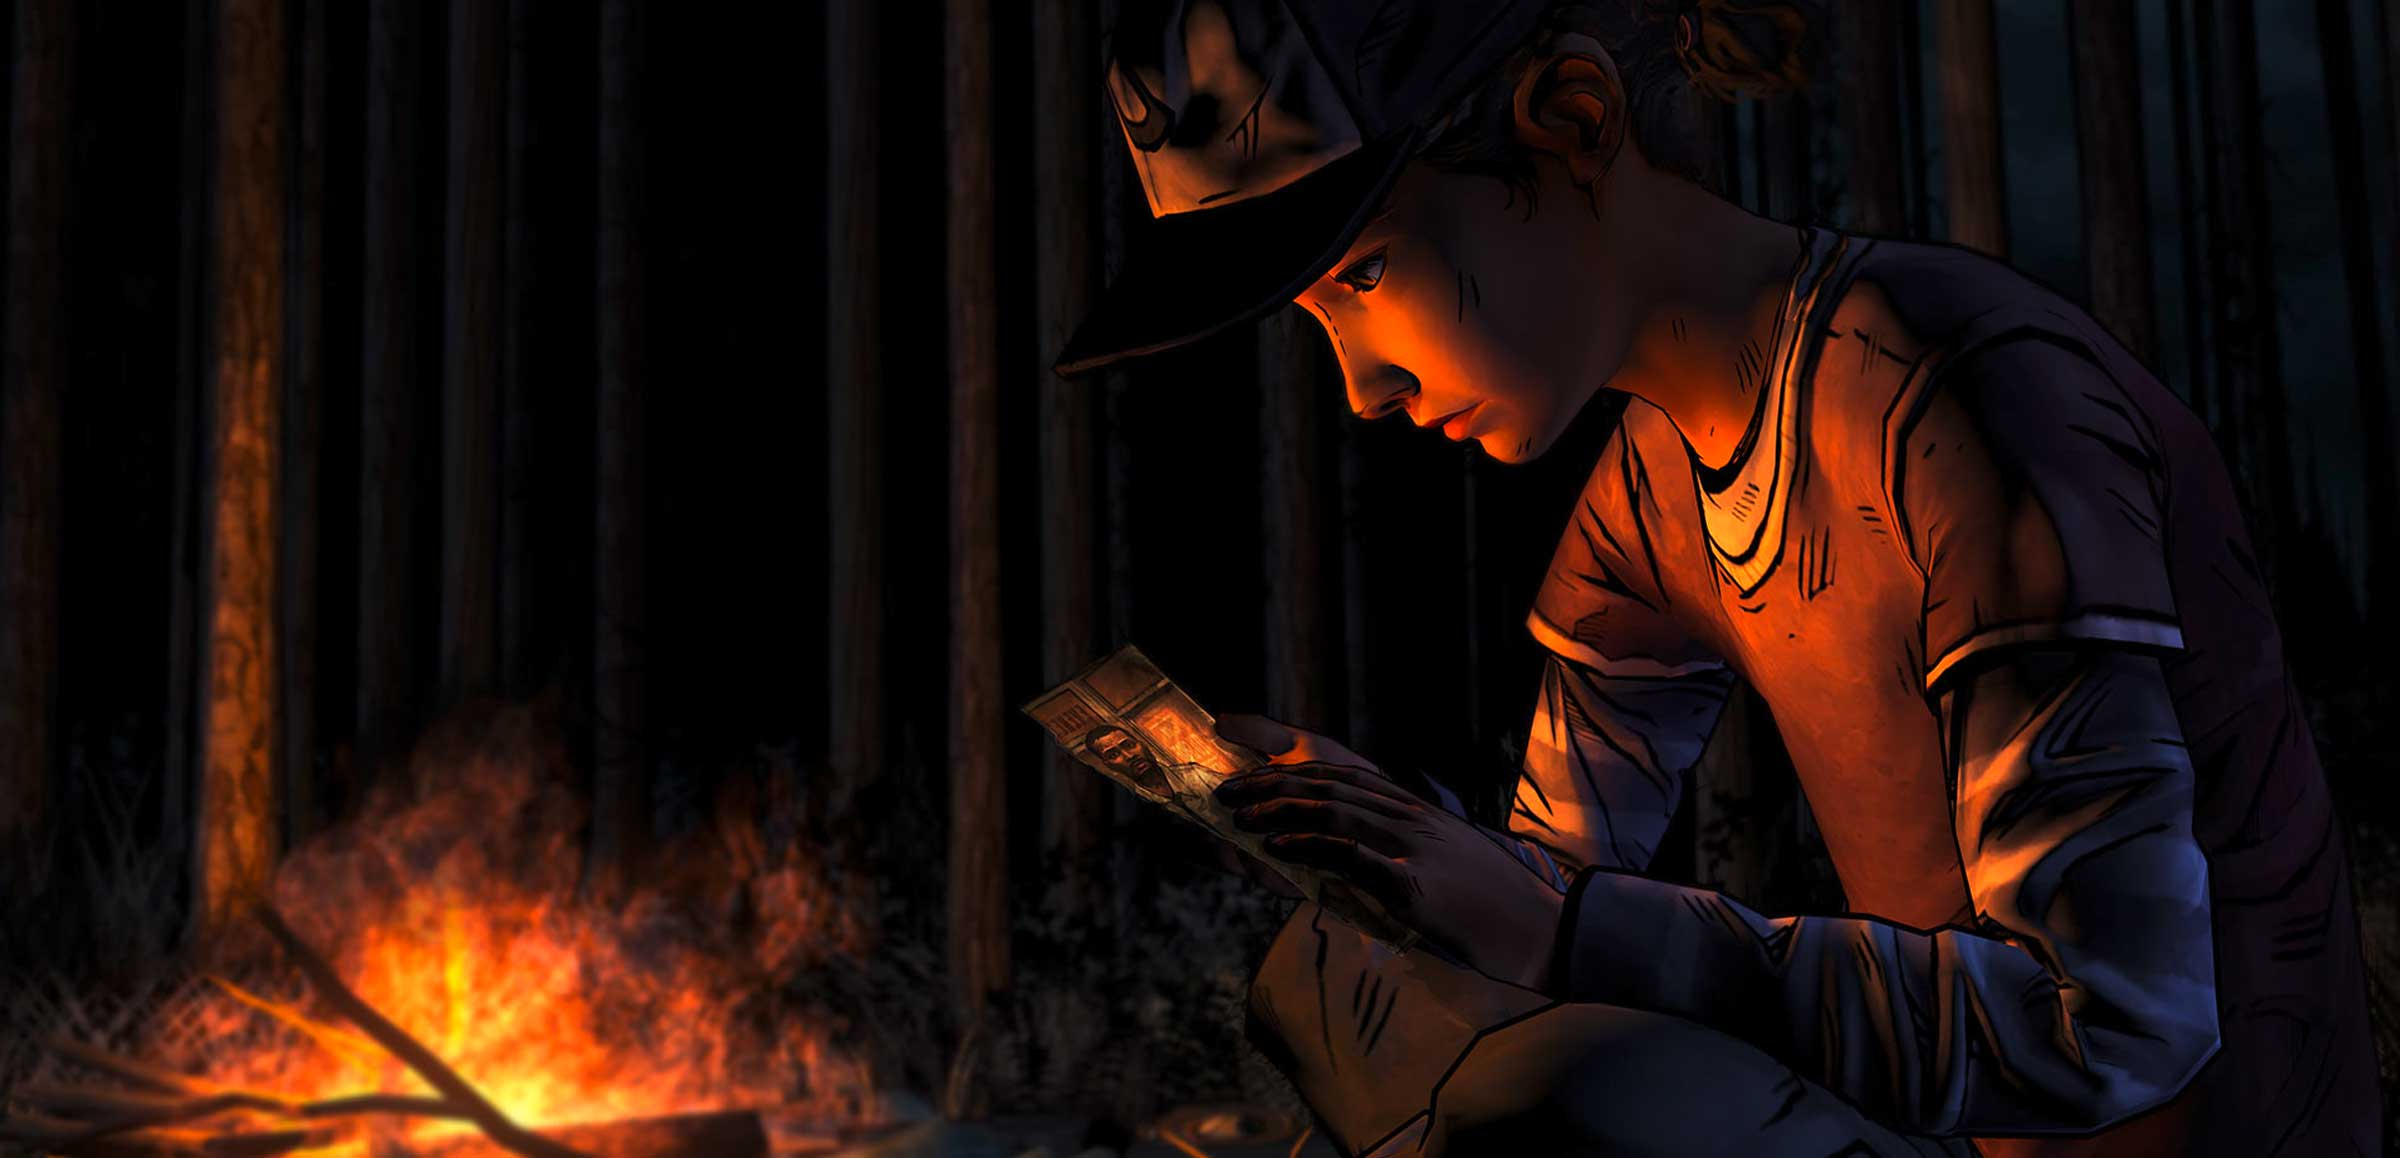 Telltale describes the difficulty of starting over in The Walking Dead Season Two